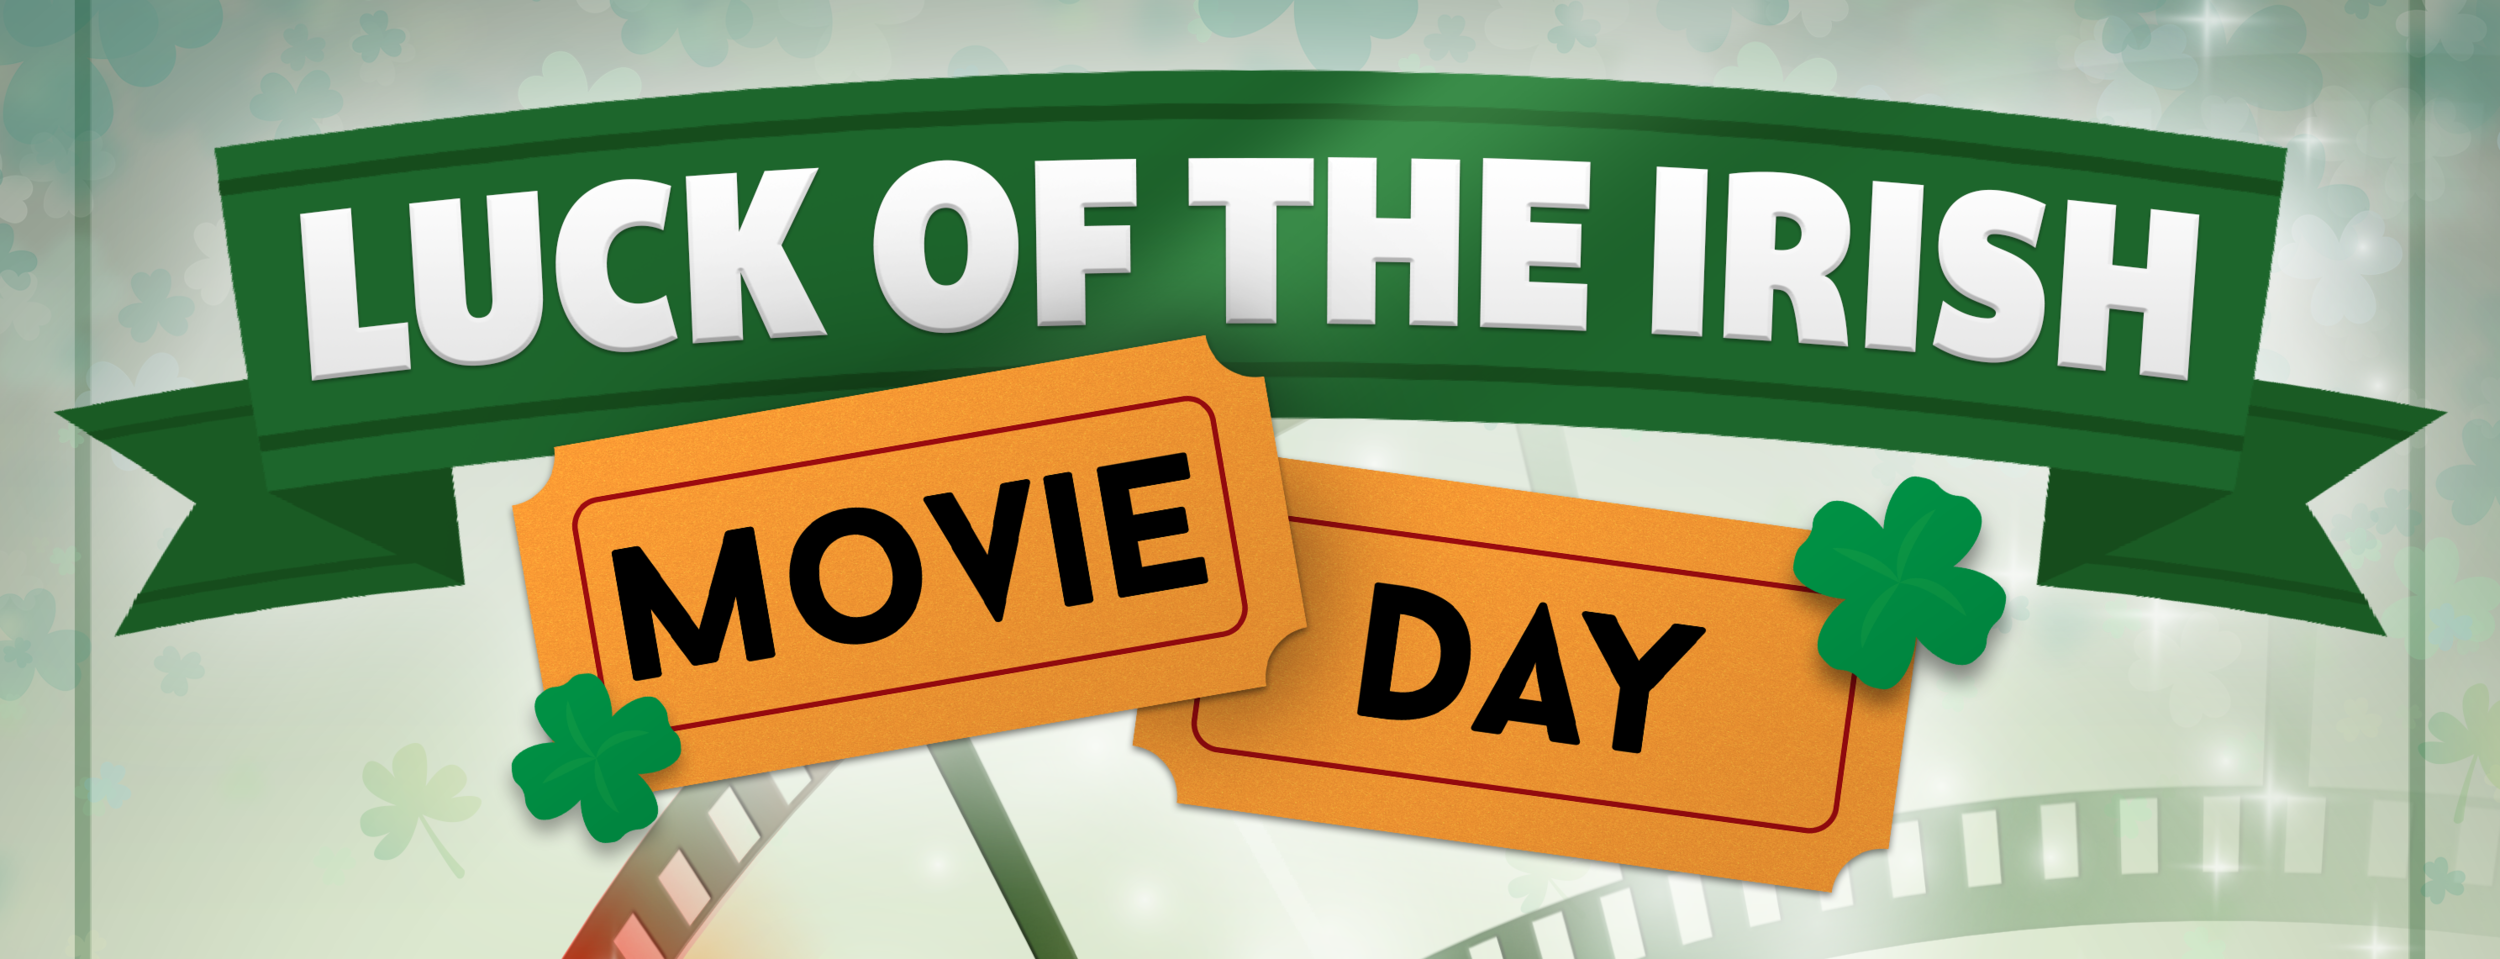 Luck of the Irish Movie Day.png